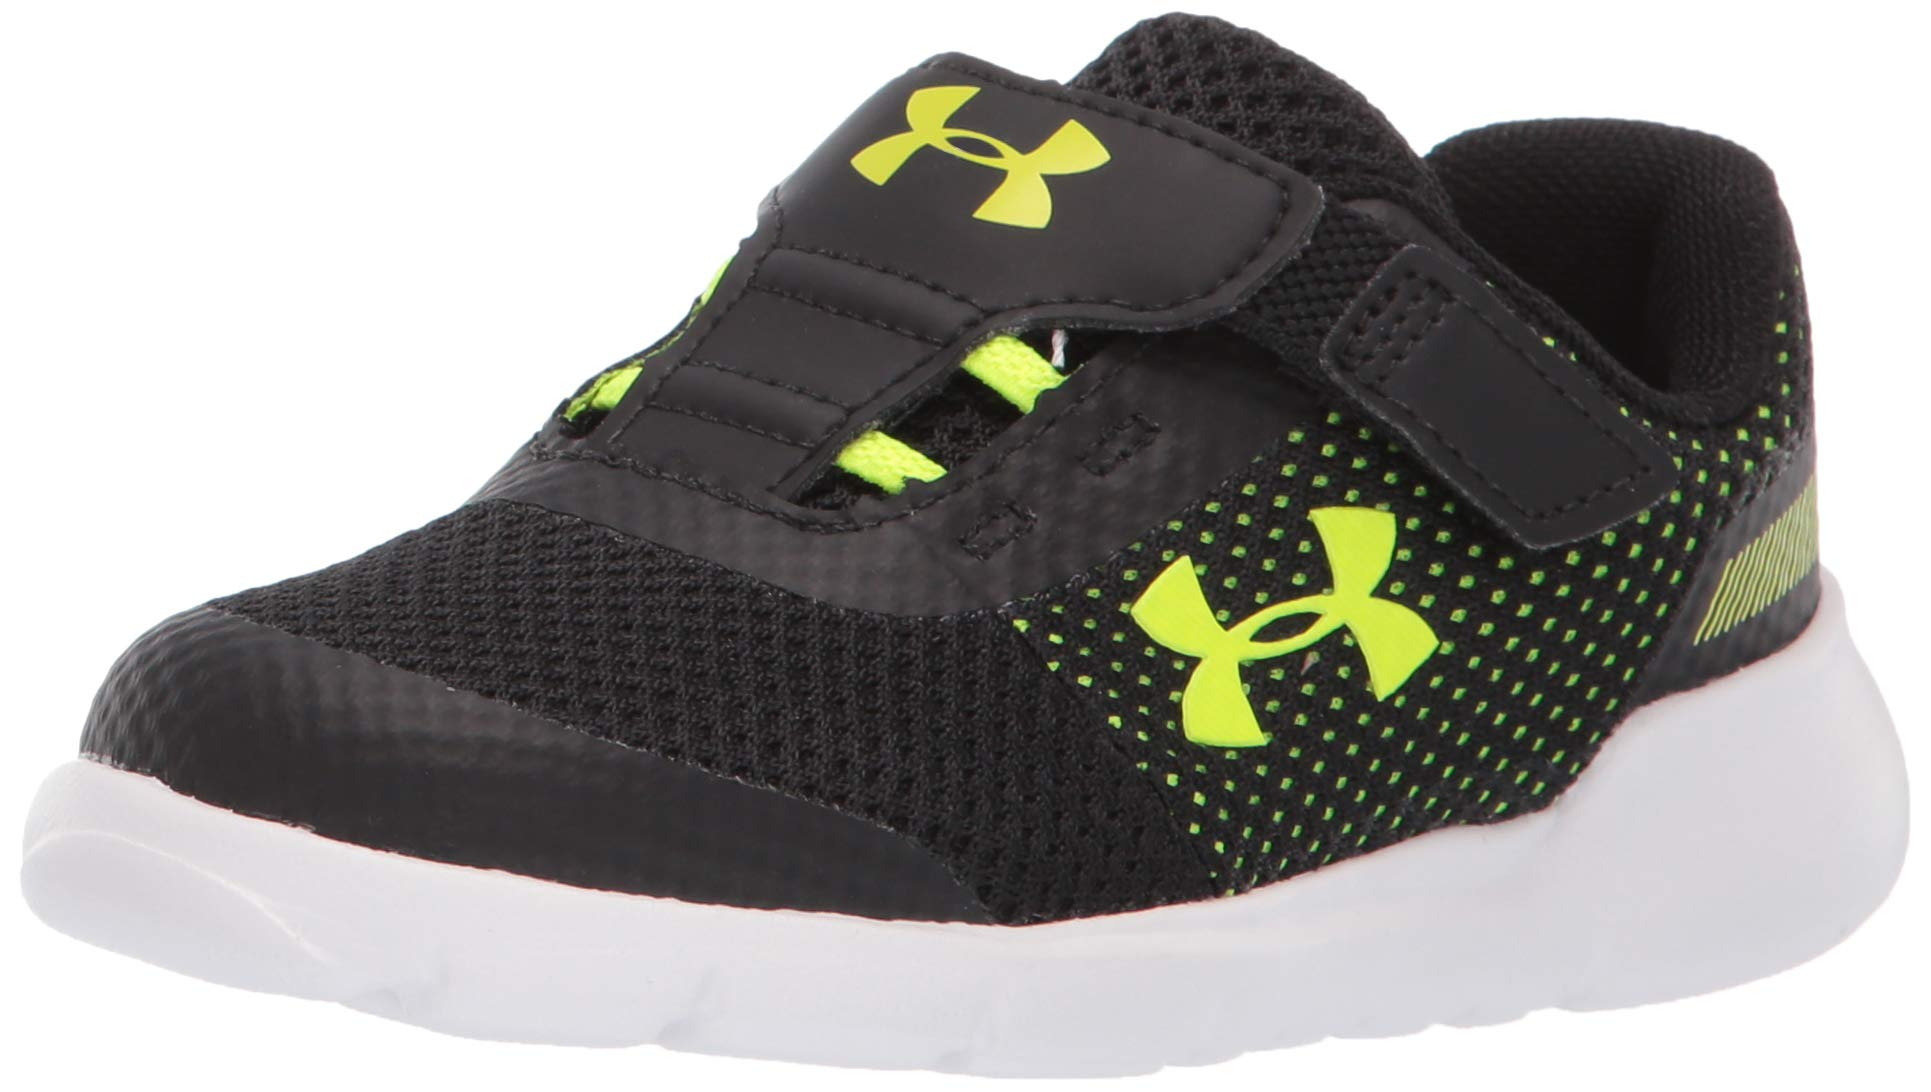 Under Armour Boys' Infant RN6 Sneaker, Black (002)/White, 10K by Under Armour